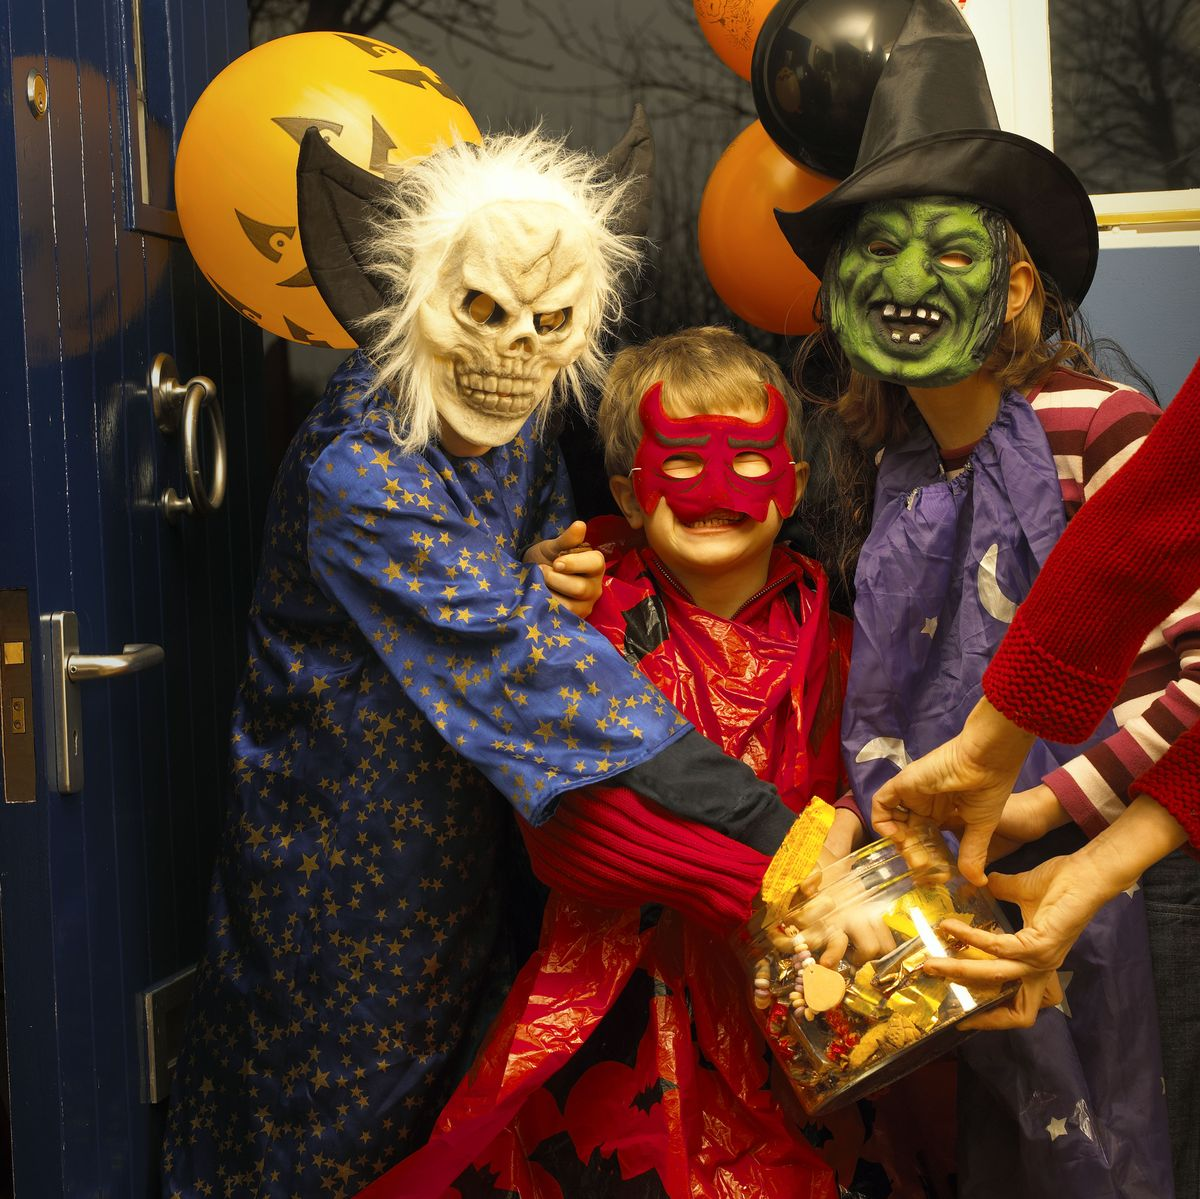 The history of Halloween and Christianity goes back to the Middle Ages